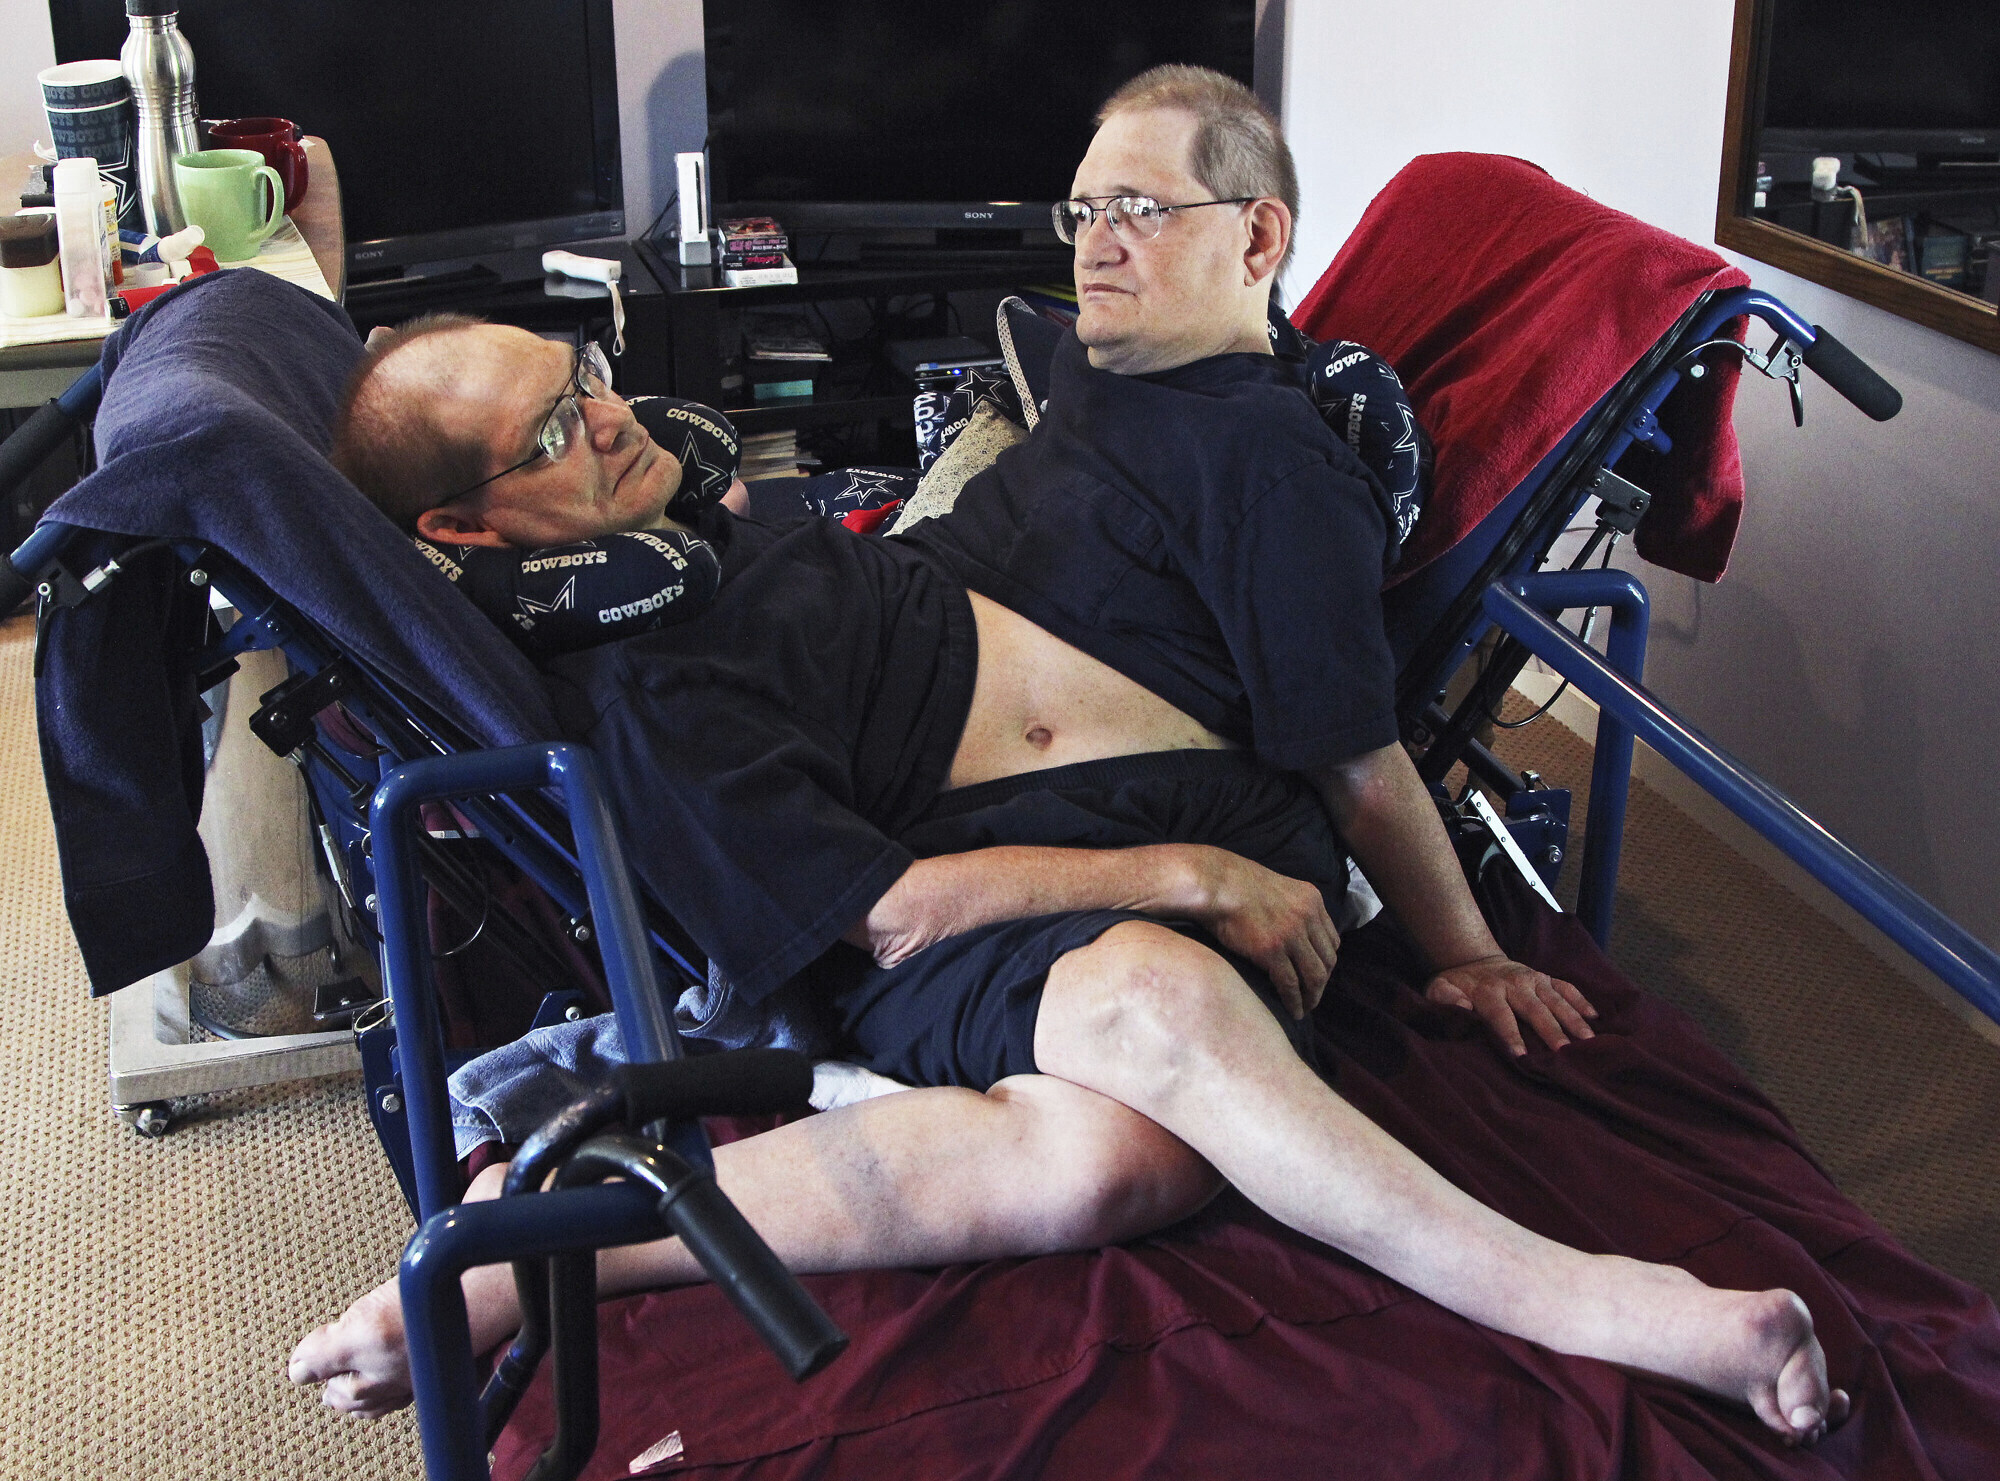 Oldest Conjoined Twins Die